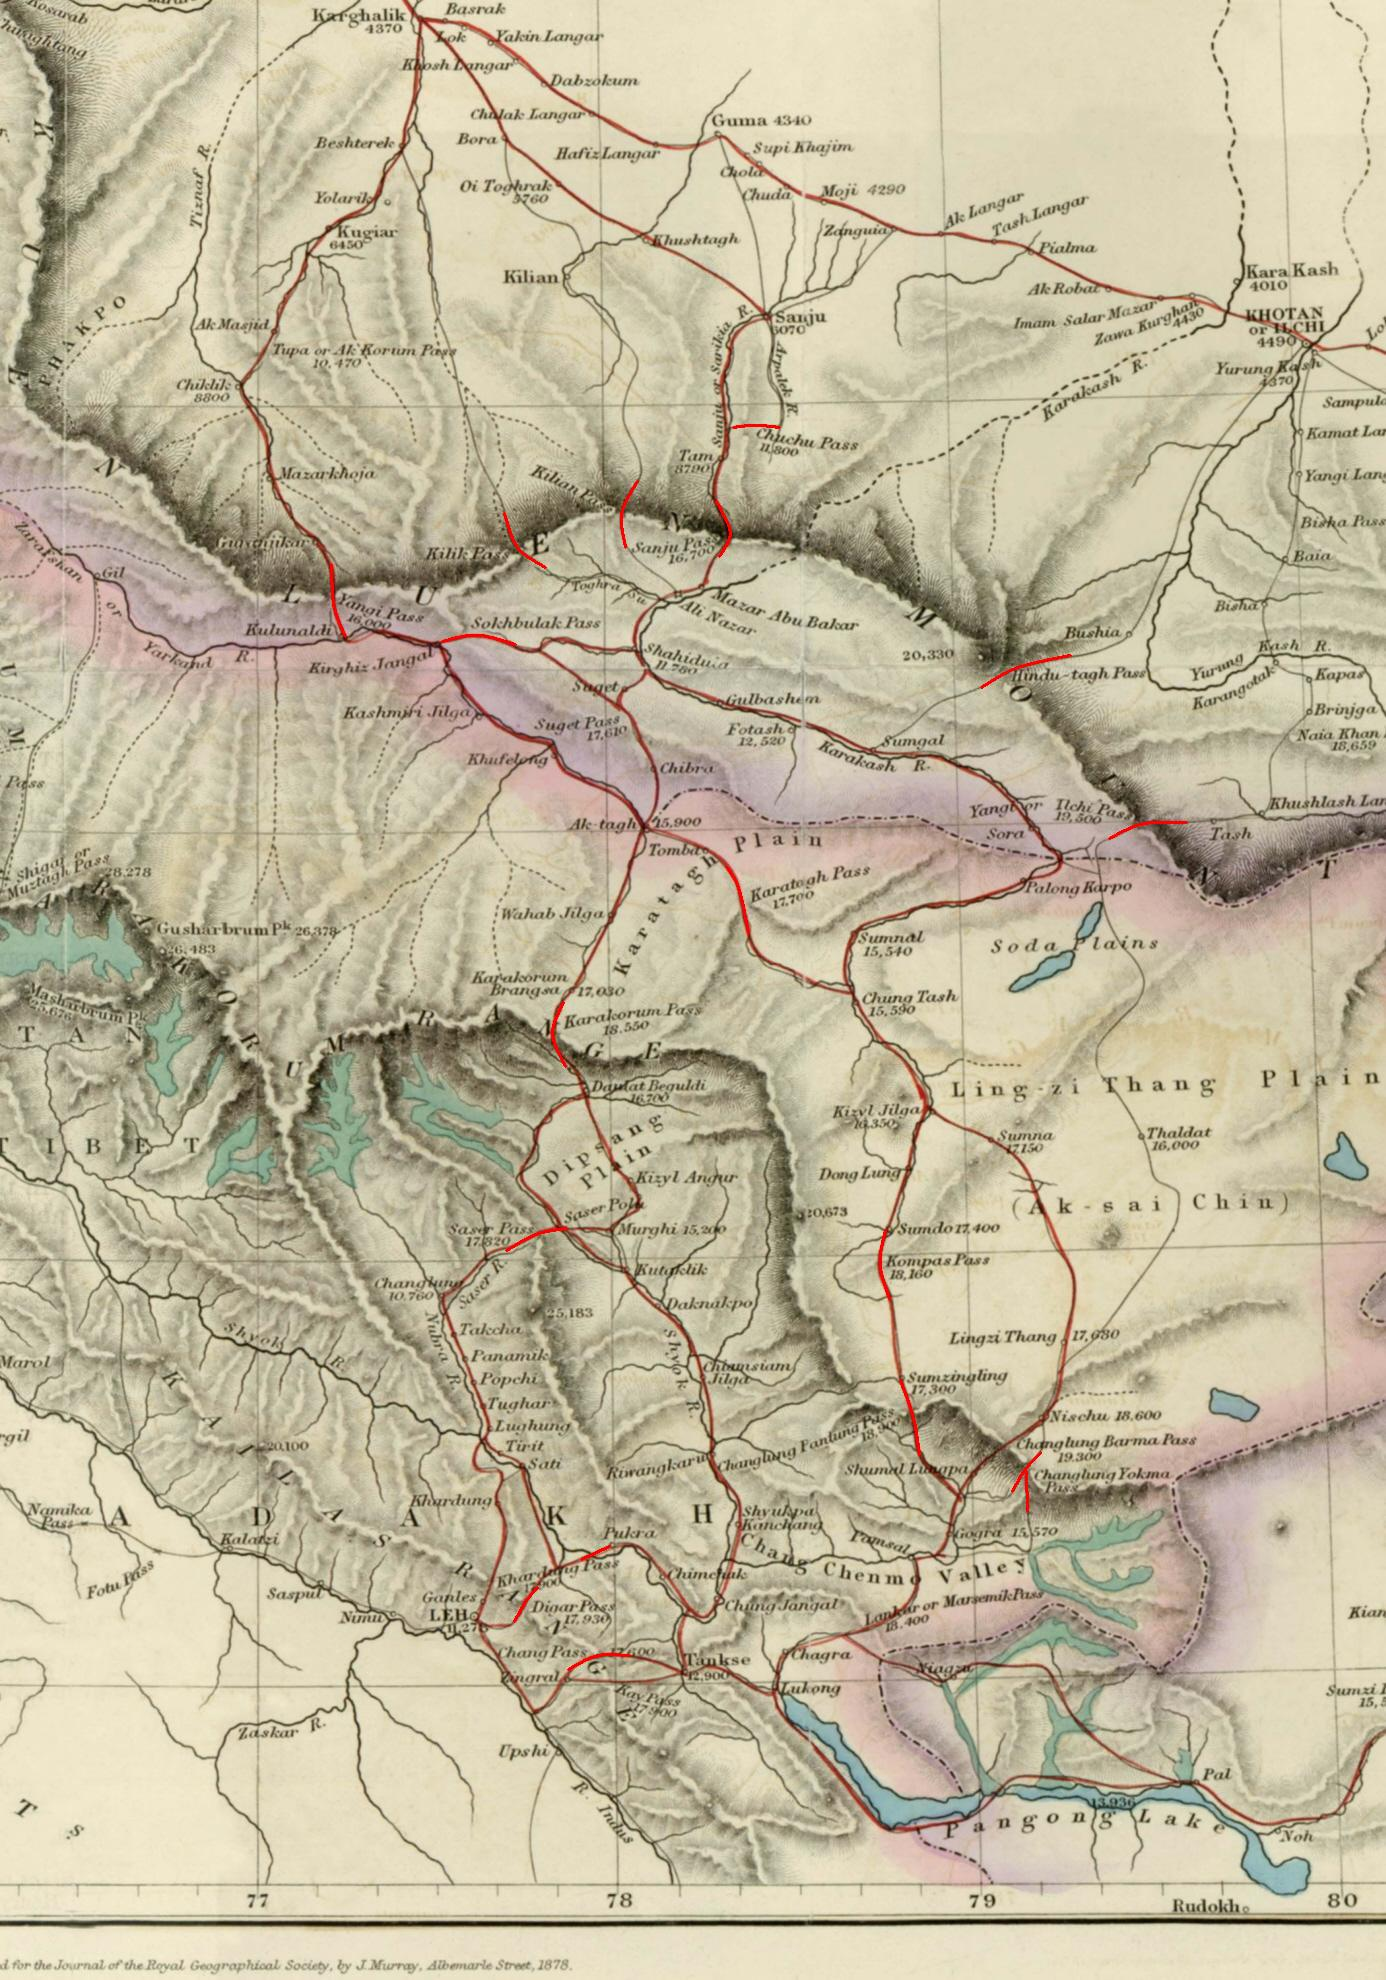 Map of Central Asia (1878) showing Khotan (near top right corner). The previous border claimed by the British Indian Empire is shown in the two-toned purple and pink band with Shahidulla and the Kilik, Kilian and Sanju Passes clearly north of the border.